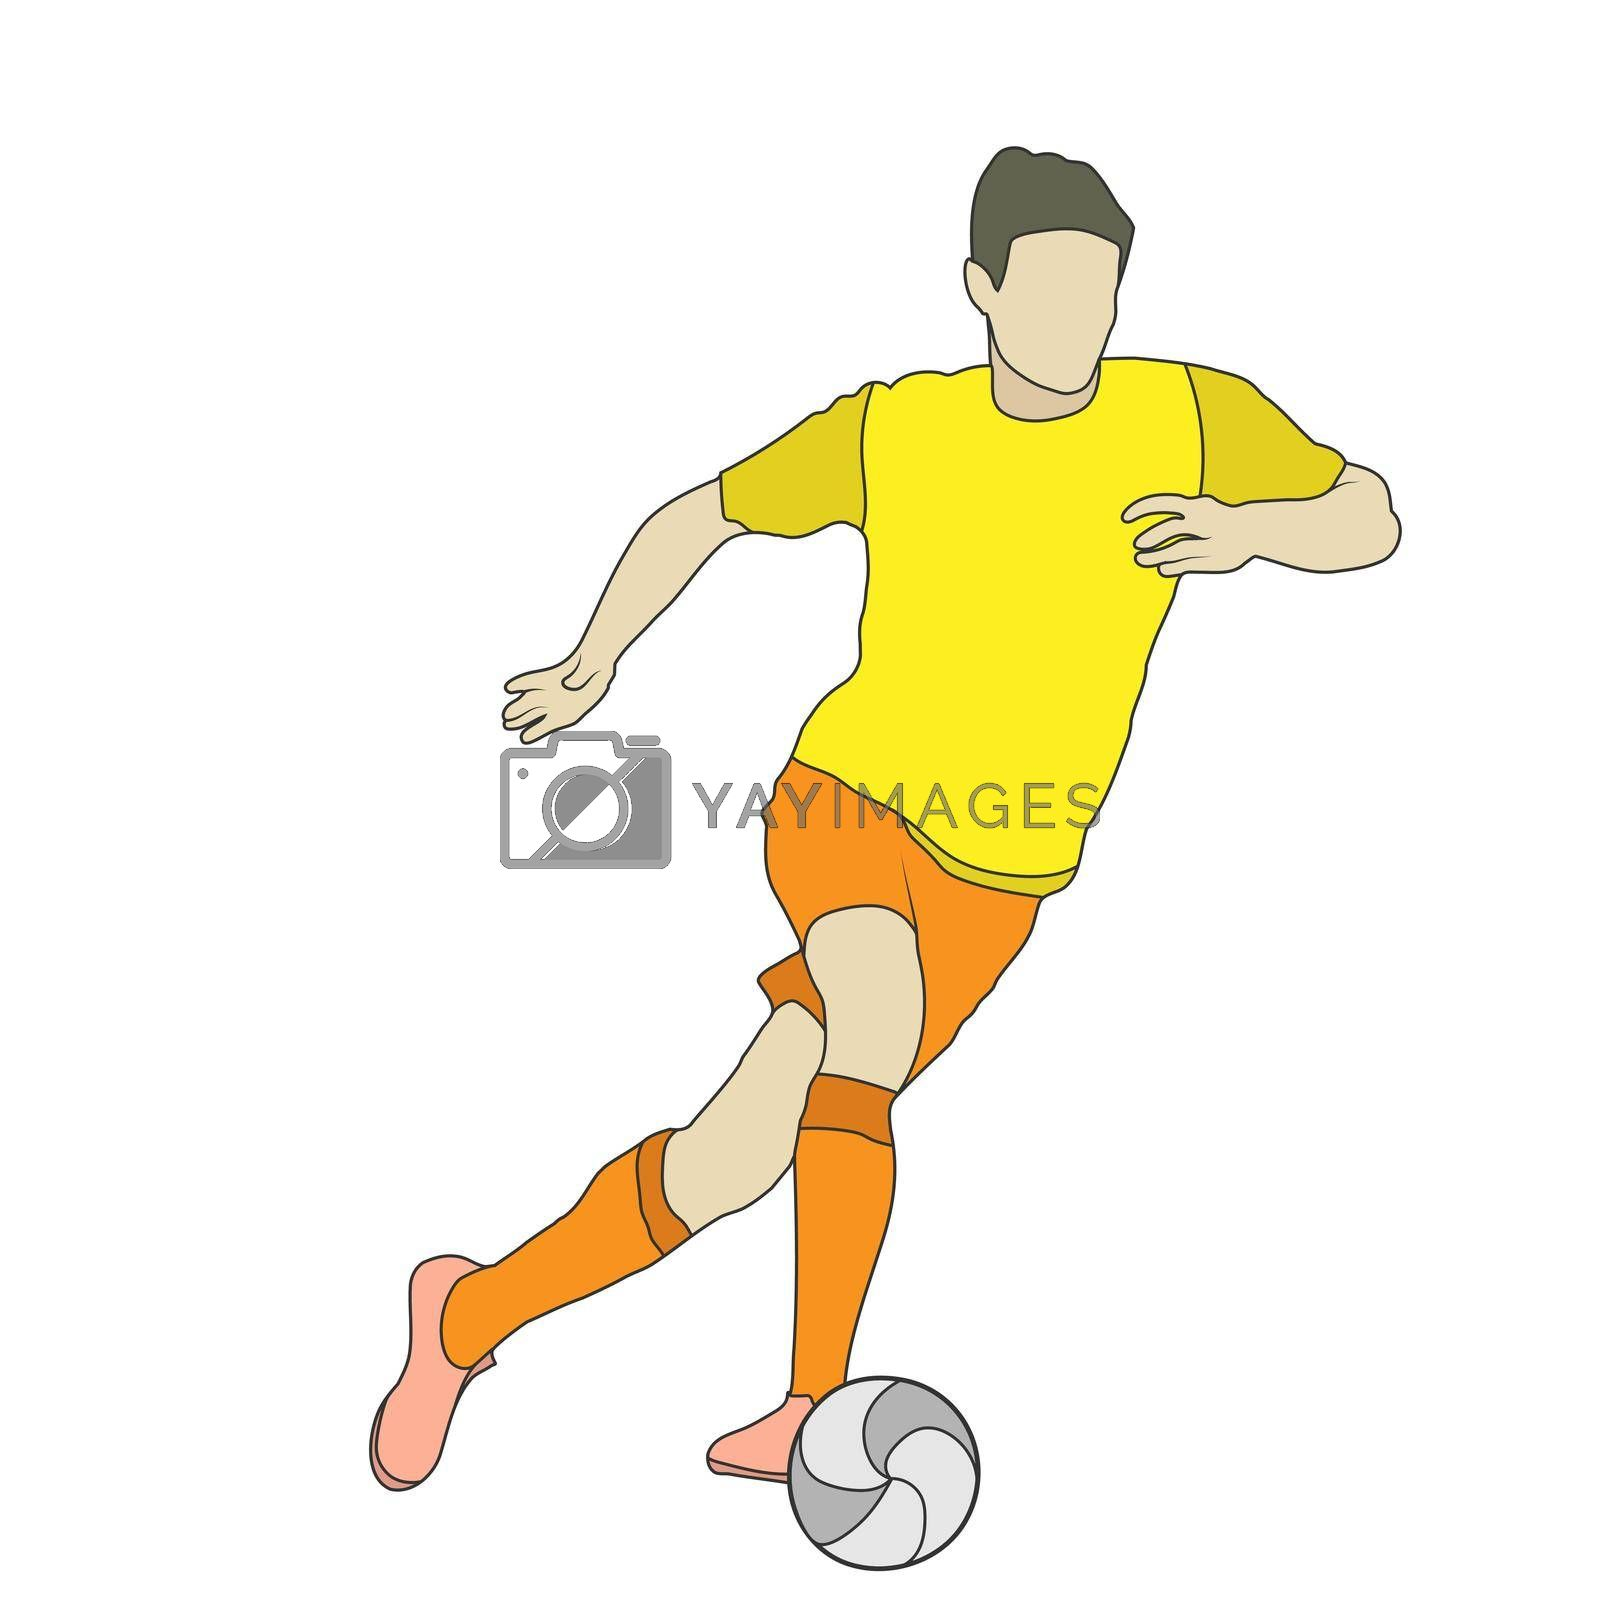 Football. Colored silhouette of a football player. An athlete plays football. Flat Style